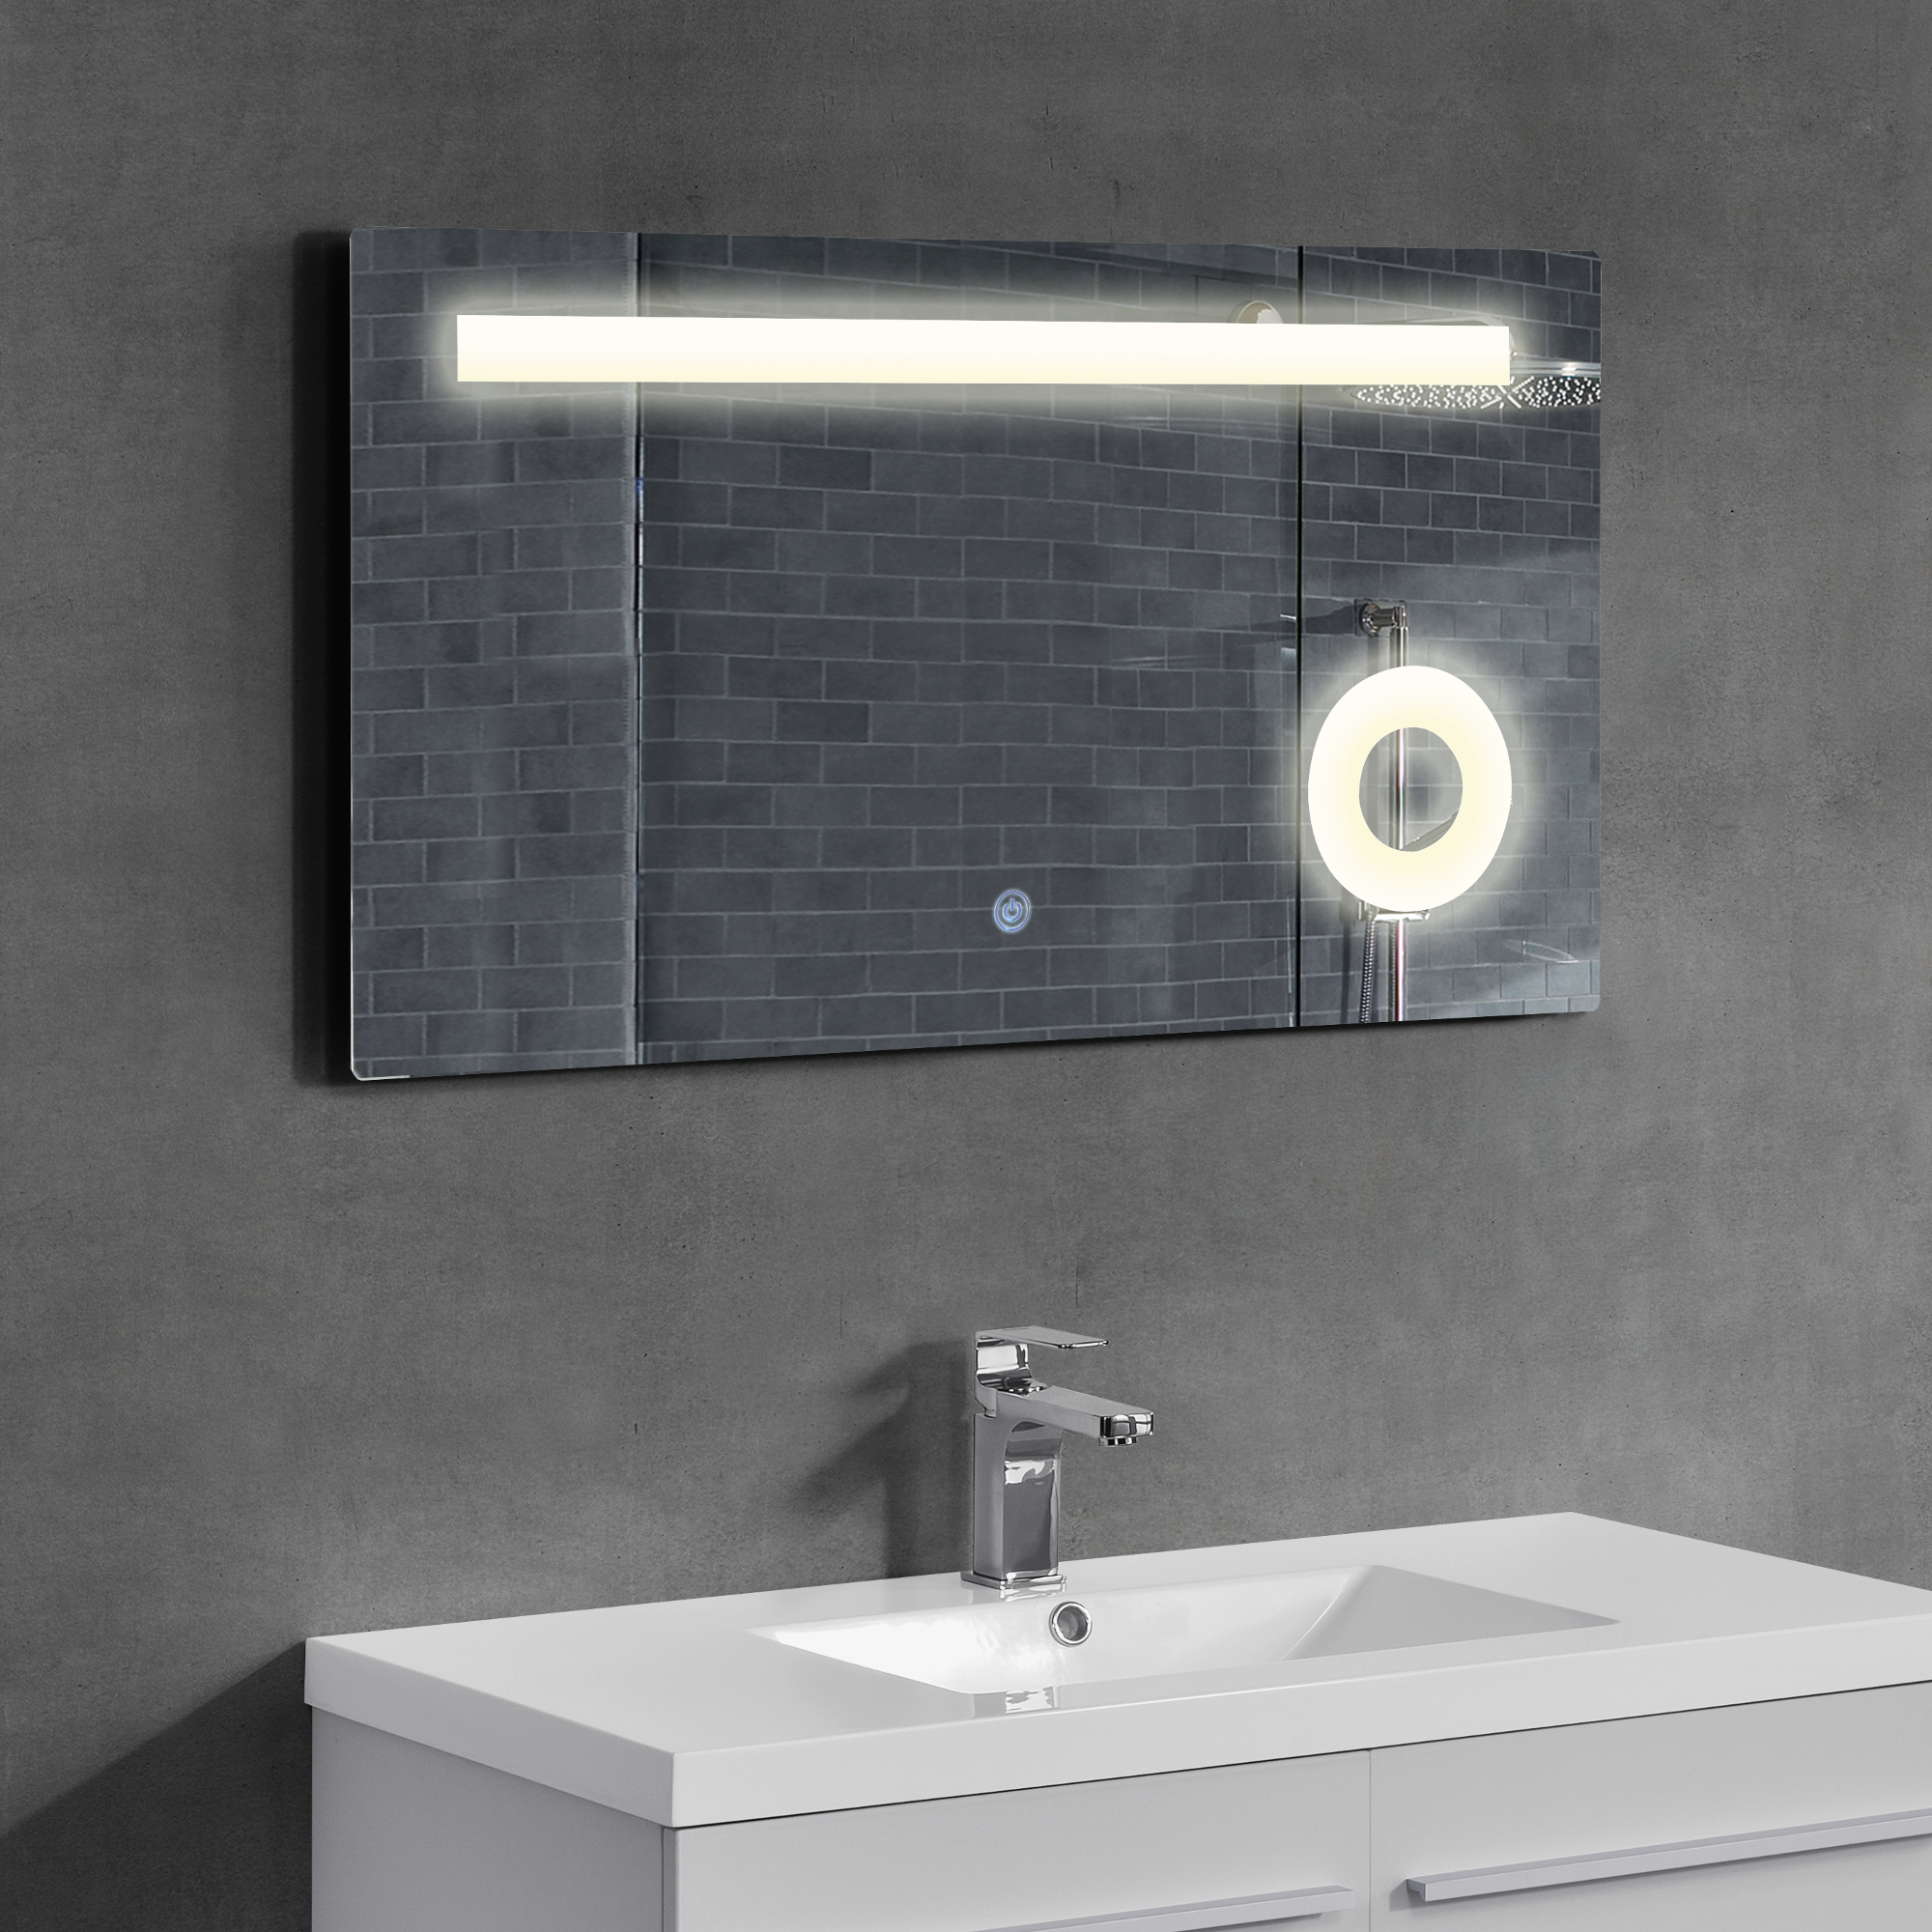 Led mirror cosmetic make up wall mounted for Miroir 60 x 100